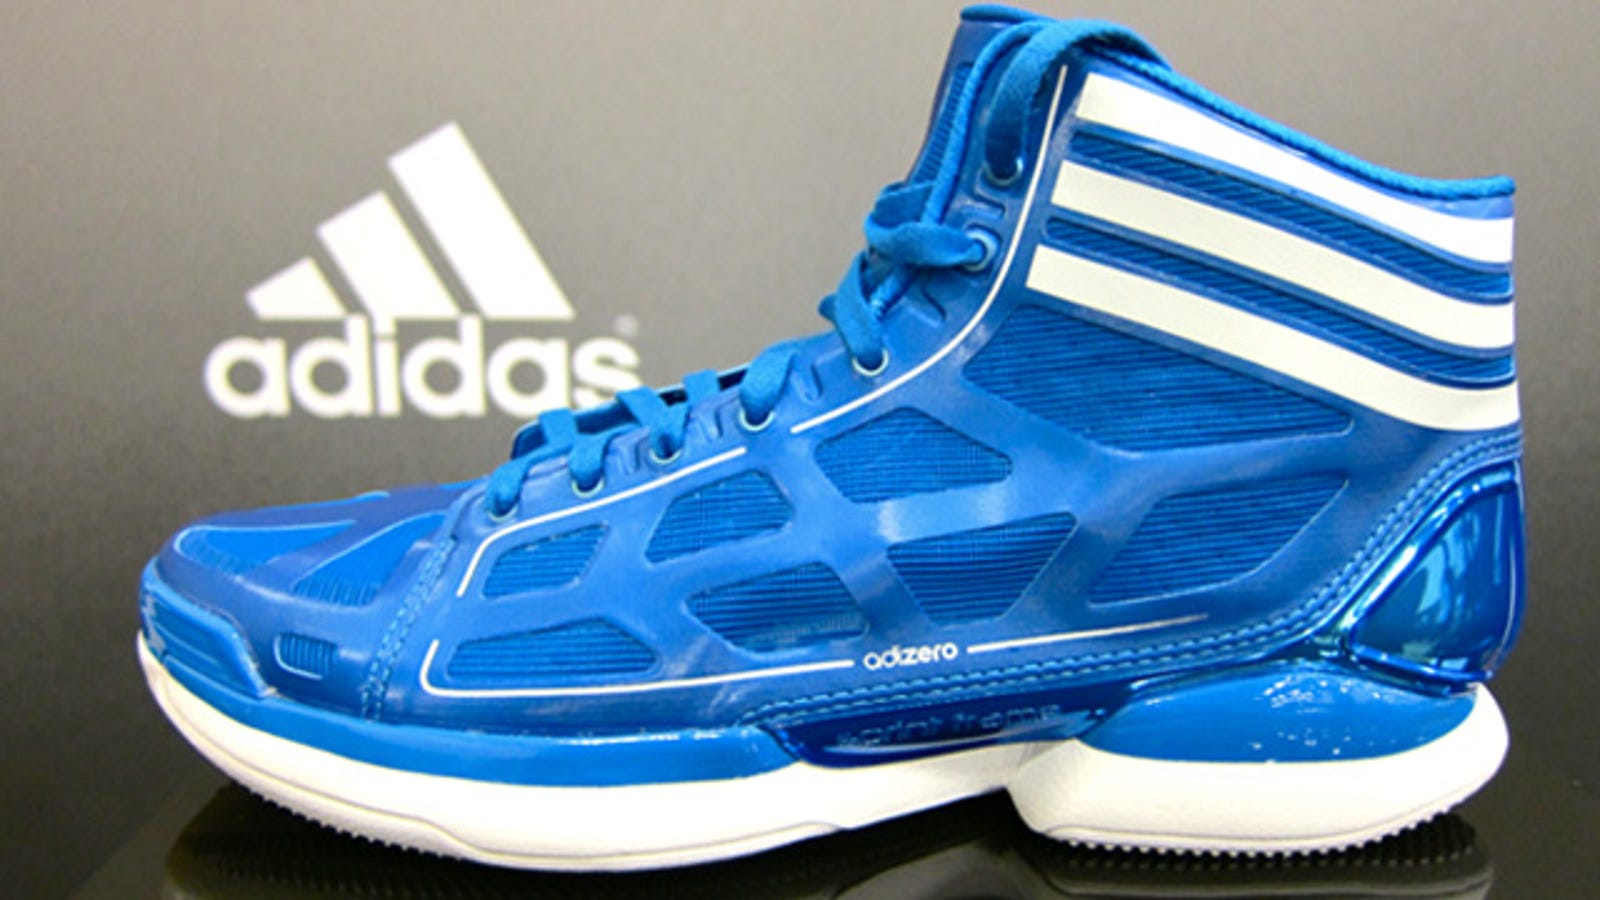 08e45c41afec Shooting Hoops in the Adidas AdiZero Crazy Lights